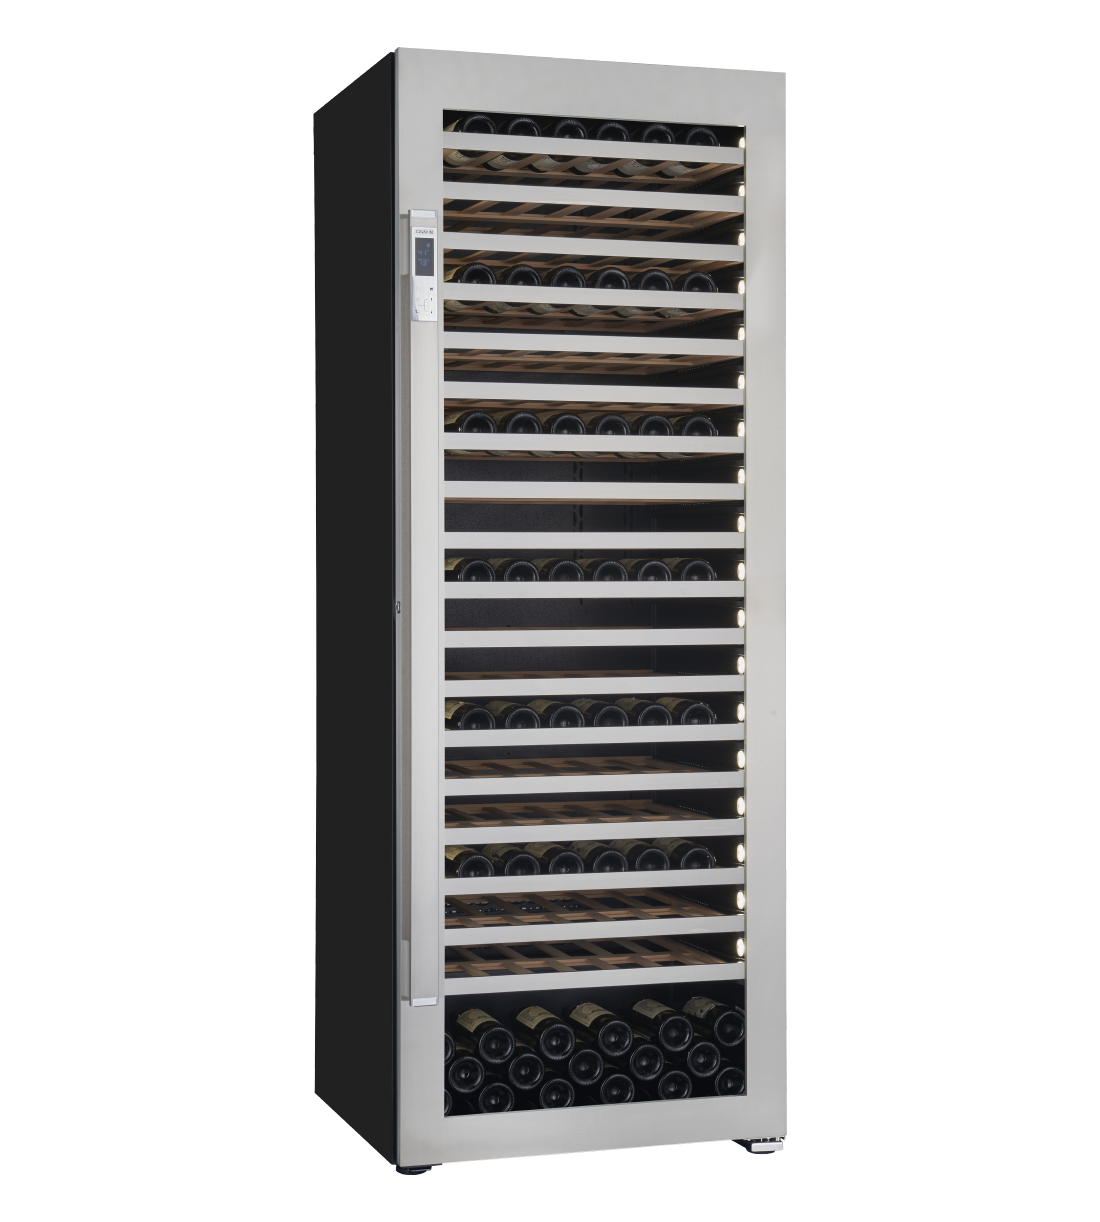 Cavavin Specialized refrigeration 30inch